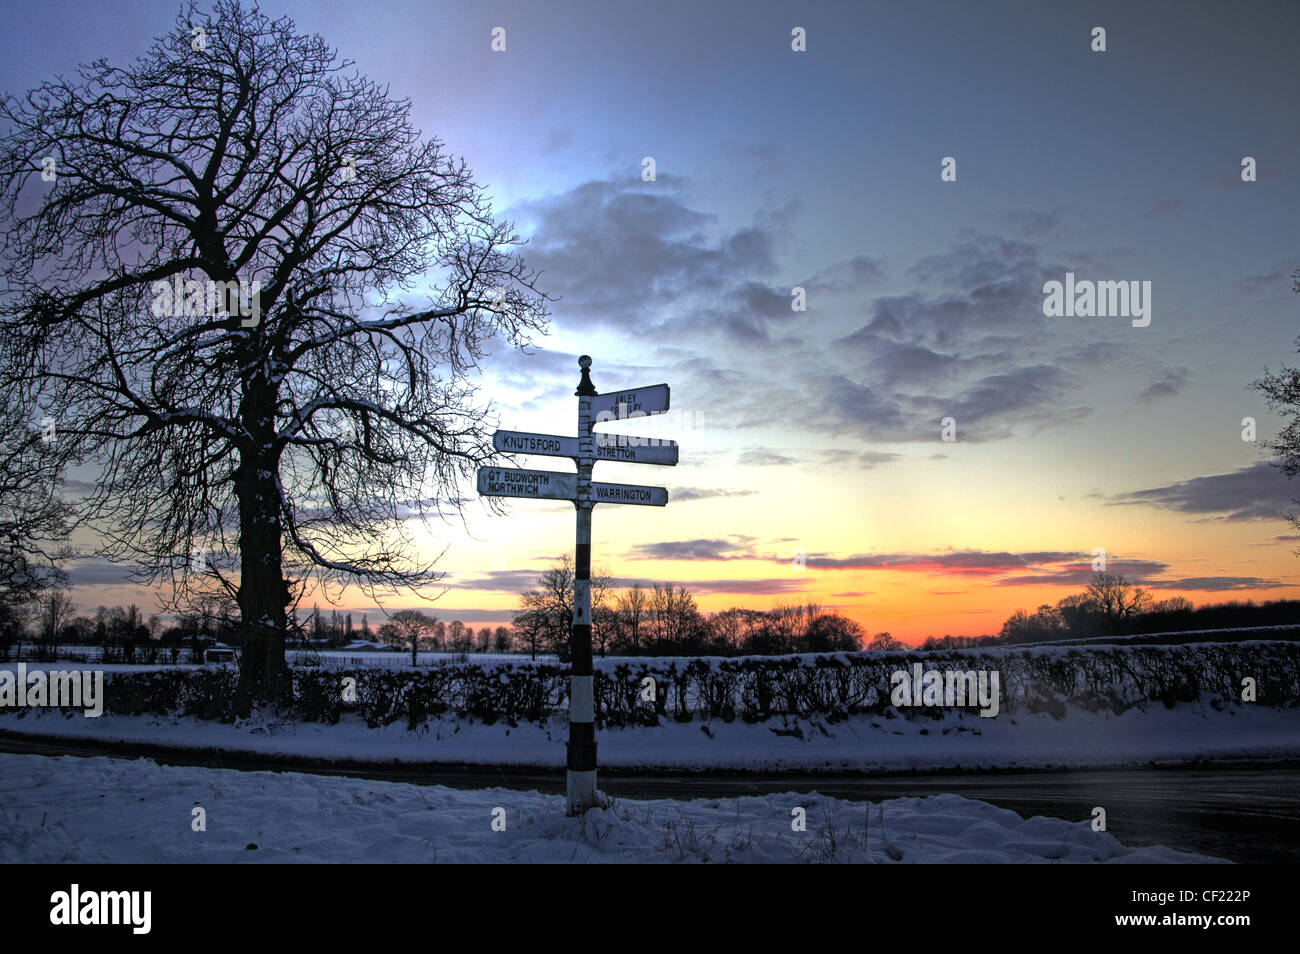 Snowy,winter,Cheshire,tree,trees,gotonysmith,Sunset,blue,oramge,sky,dusk,lane,country,snow,ice,winter,cold,orange,english,scene,road,England,finger,post,old,style,road,signage,Budworth,Sunset,And,Fingerpost,finger,gotonysmith,Buy Pictures of,Buy Images Of